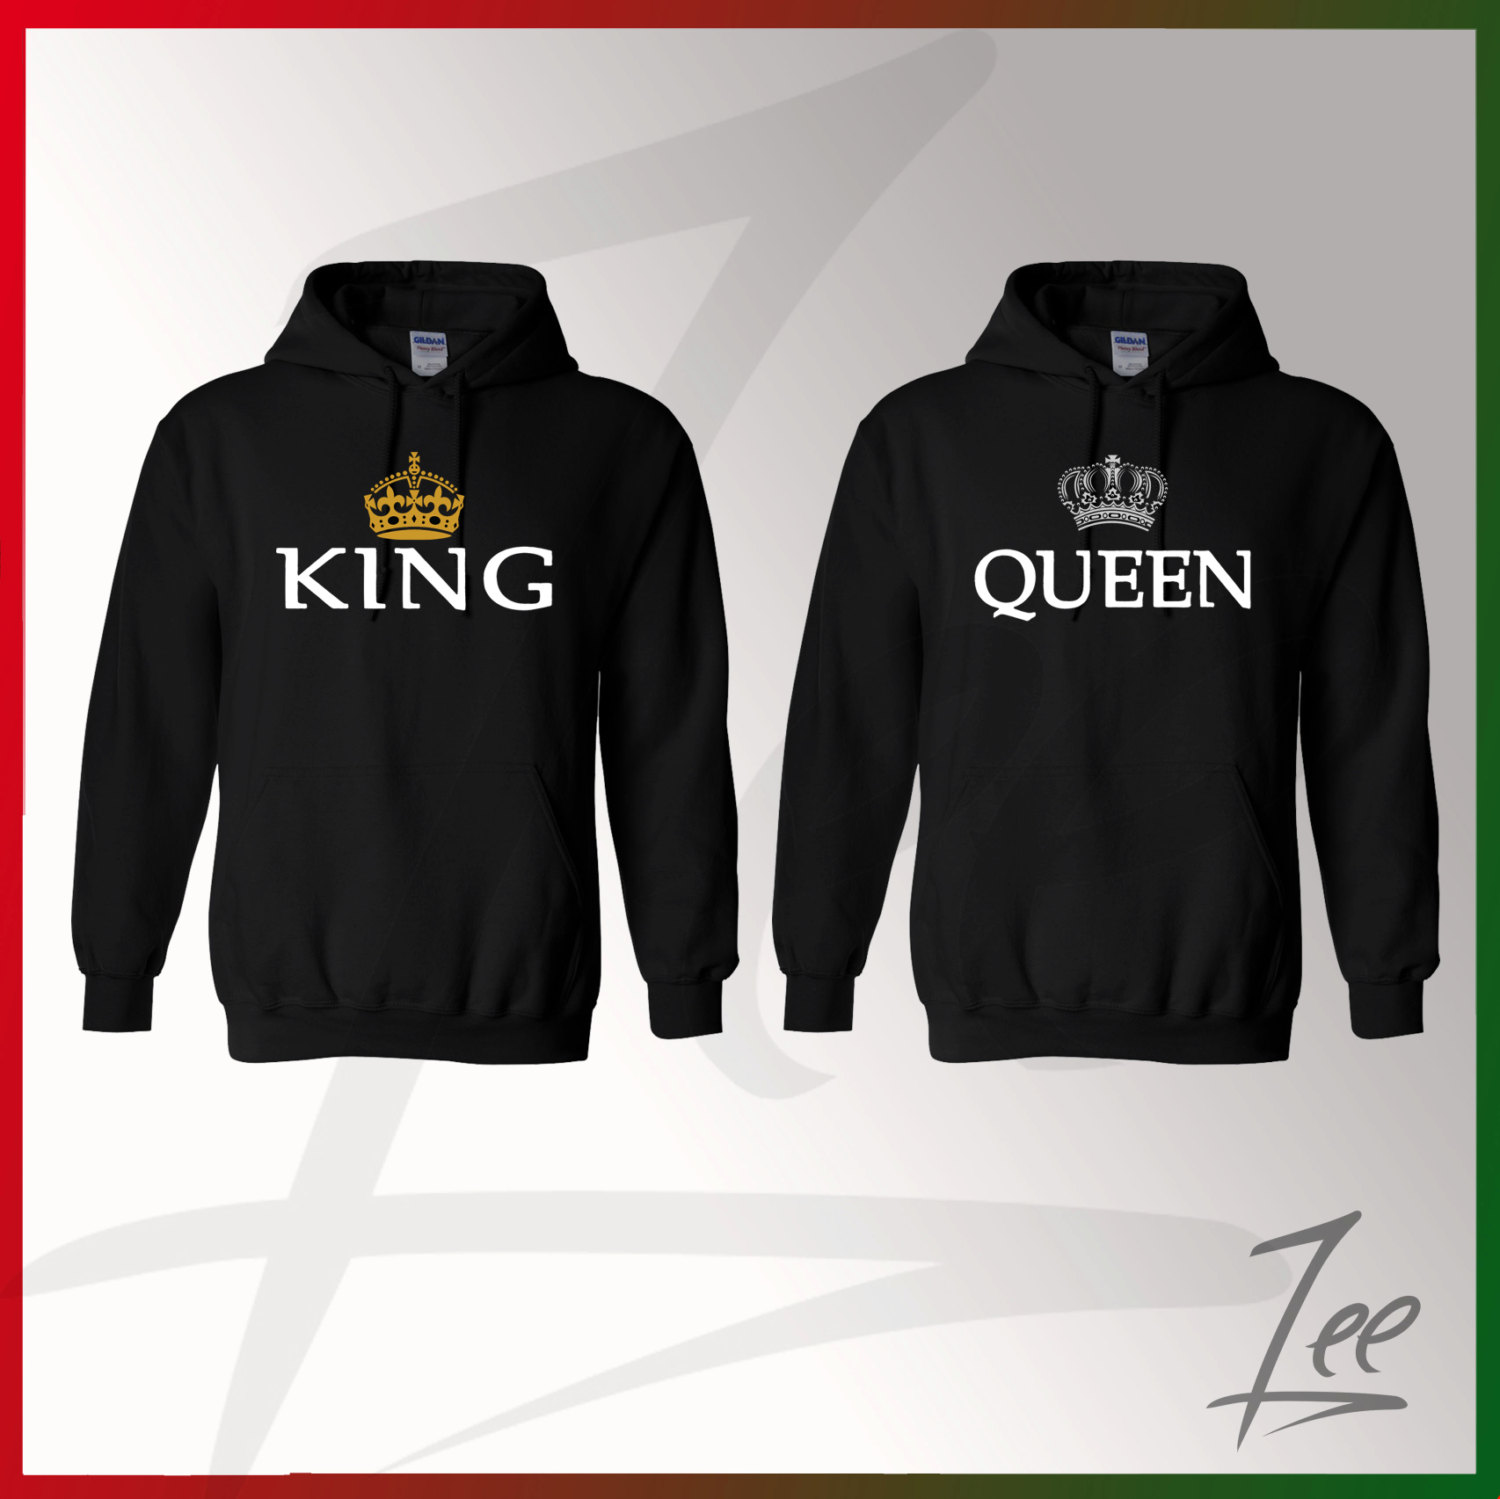 King and Queen, Inspired Soul Mate,Couple sweaters Disney, Funny Couple  hoodies Disney Couple,Matching hoodies